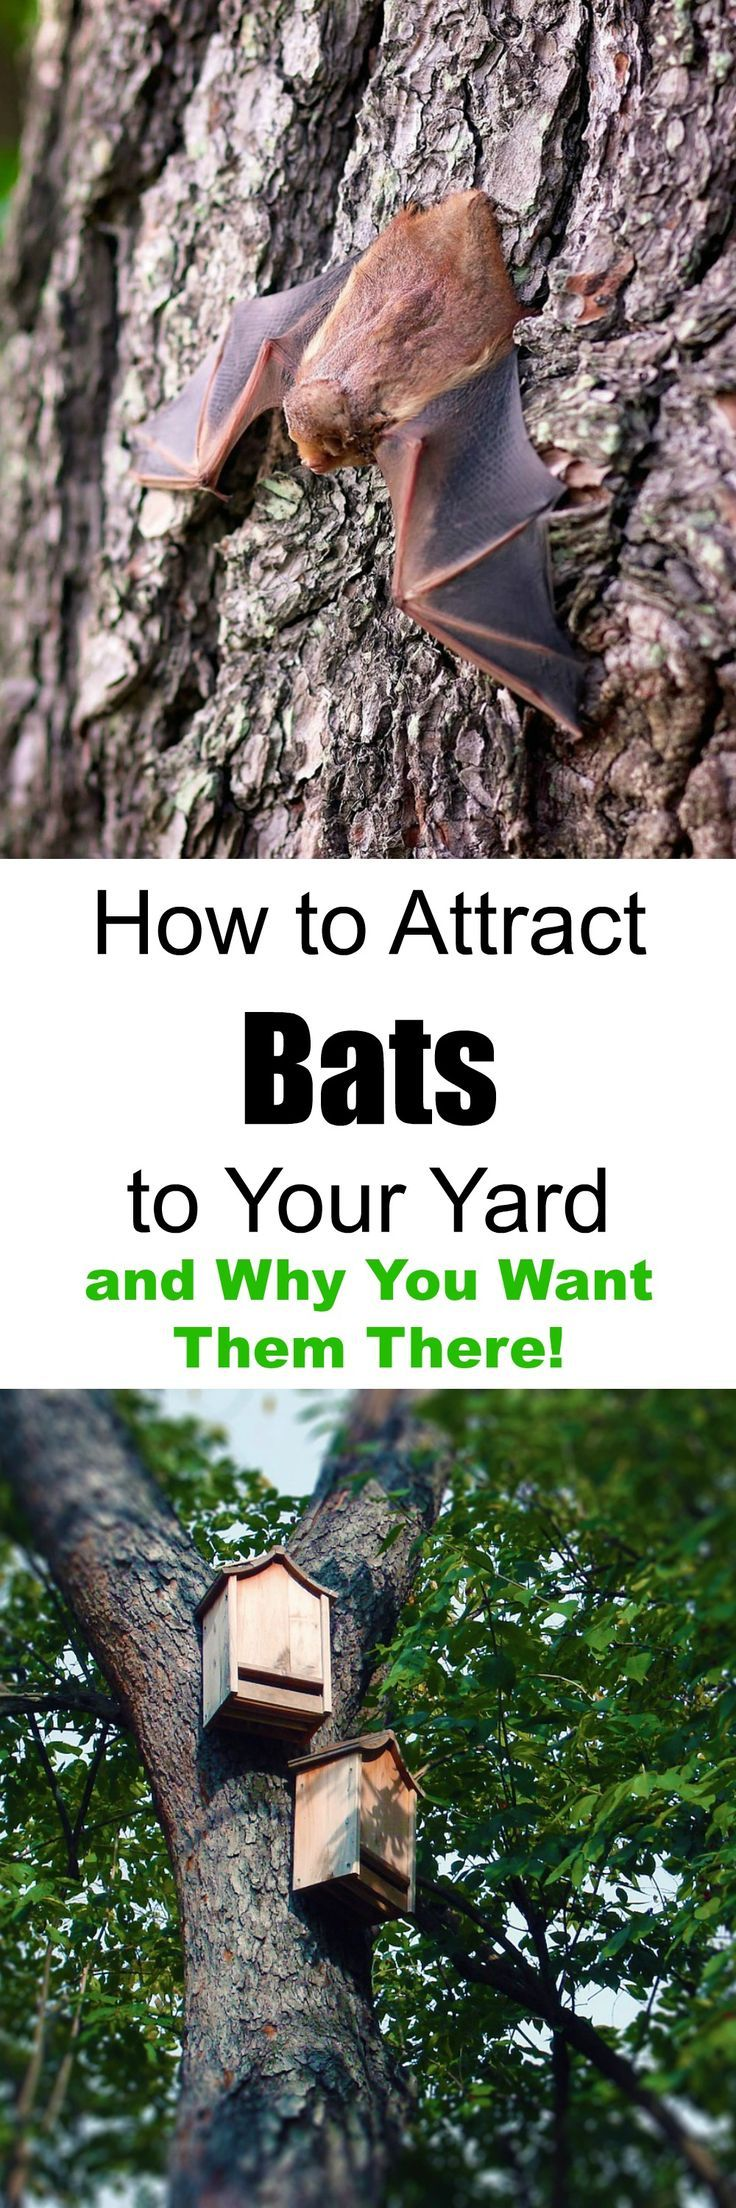 How to Attract Bats to Your Yard and Why You Want Them There!